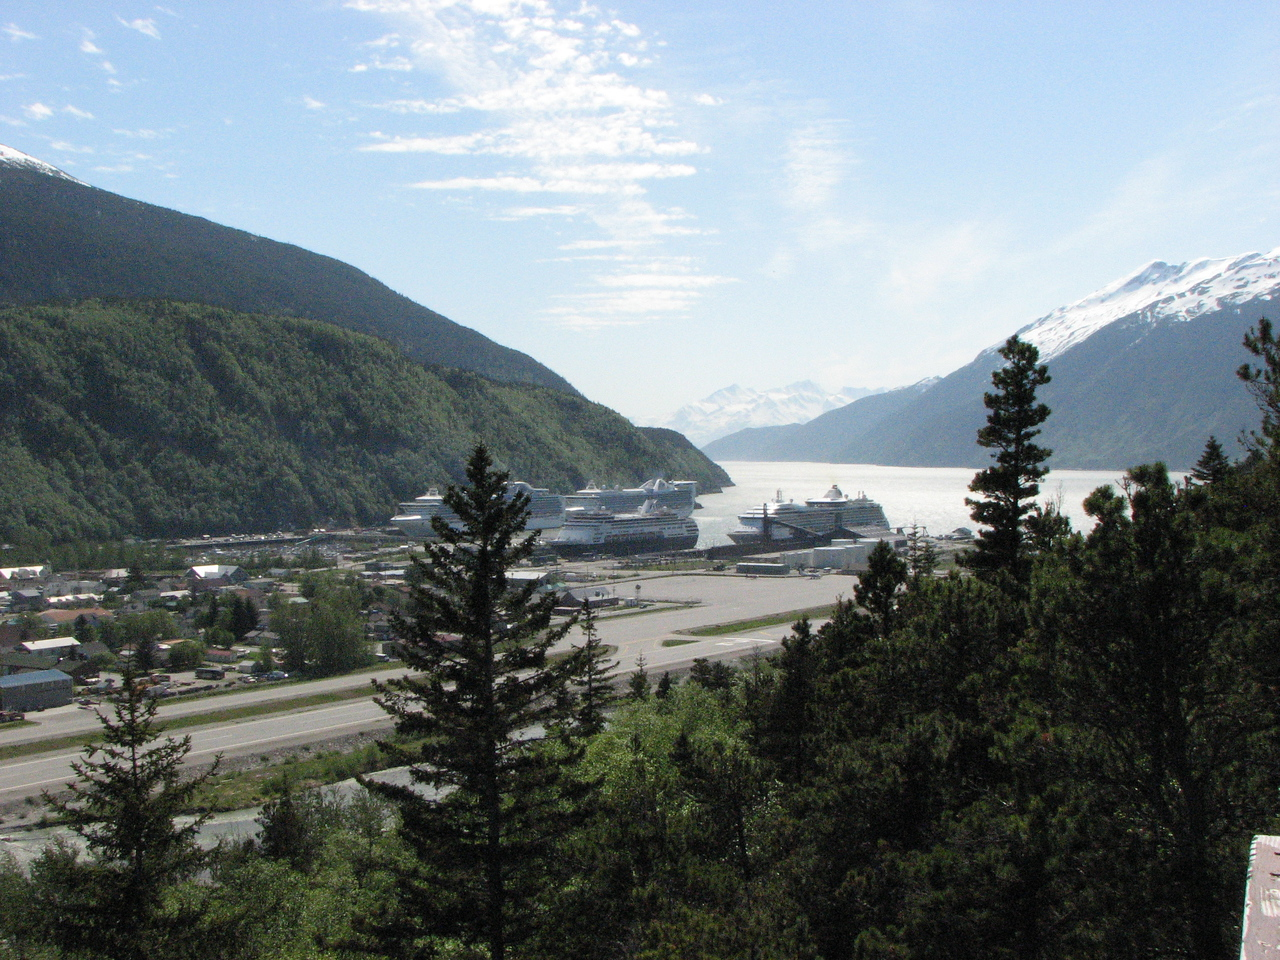 Statendam at Skagway - May 27